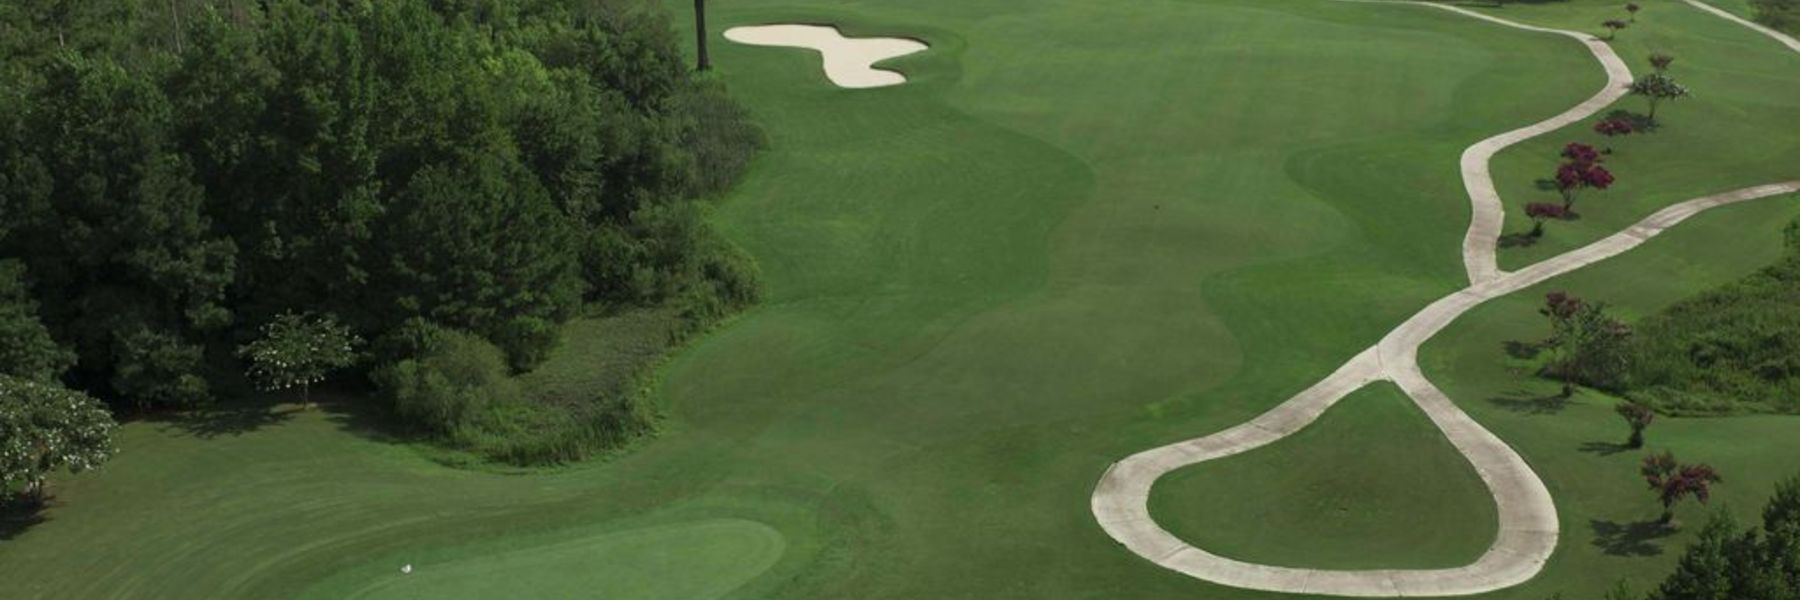 Golf Vacation Package - Heron Ridge Golf Club